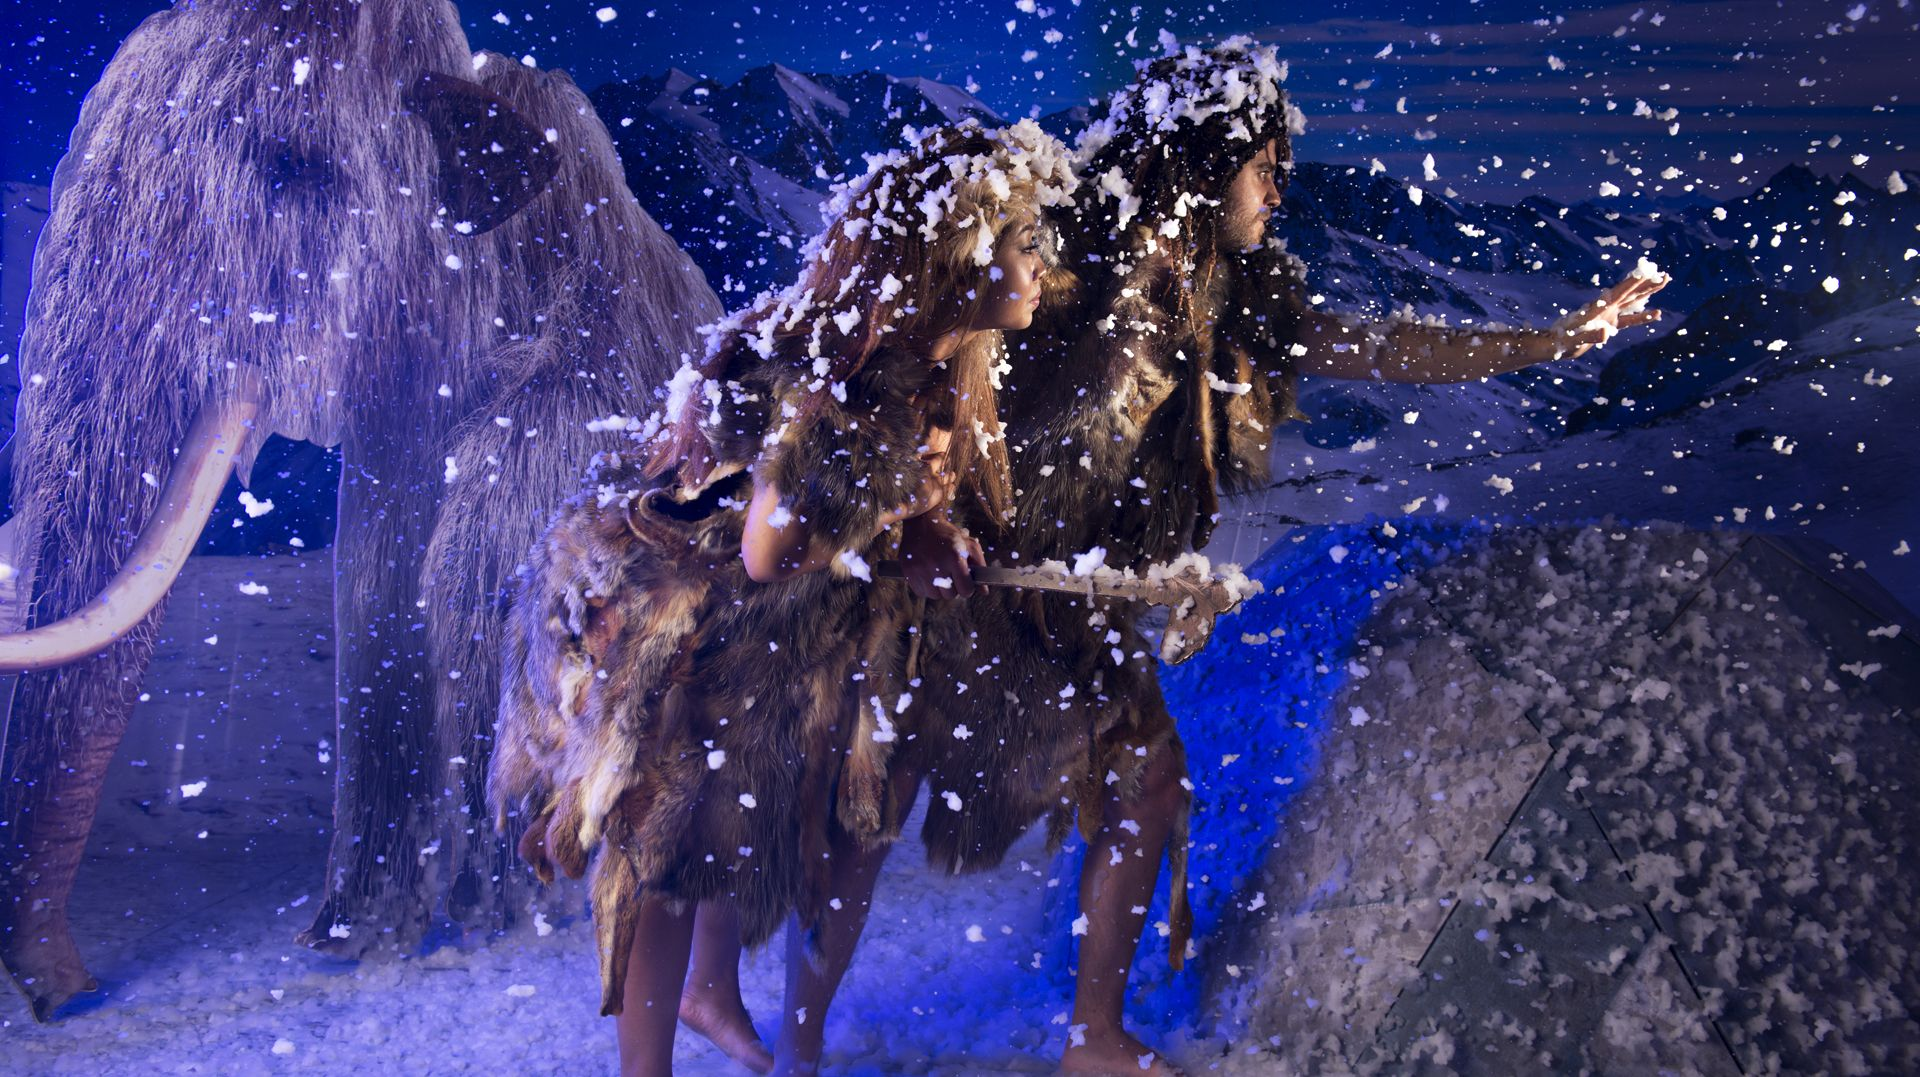 IceAge_Cropped_Web